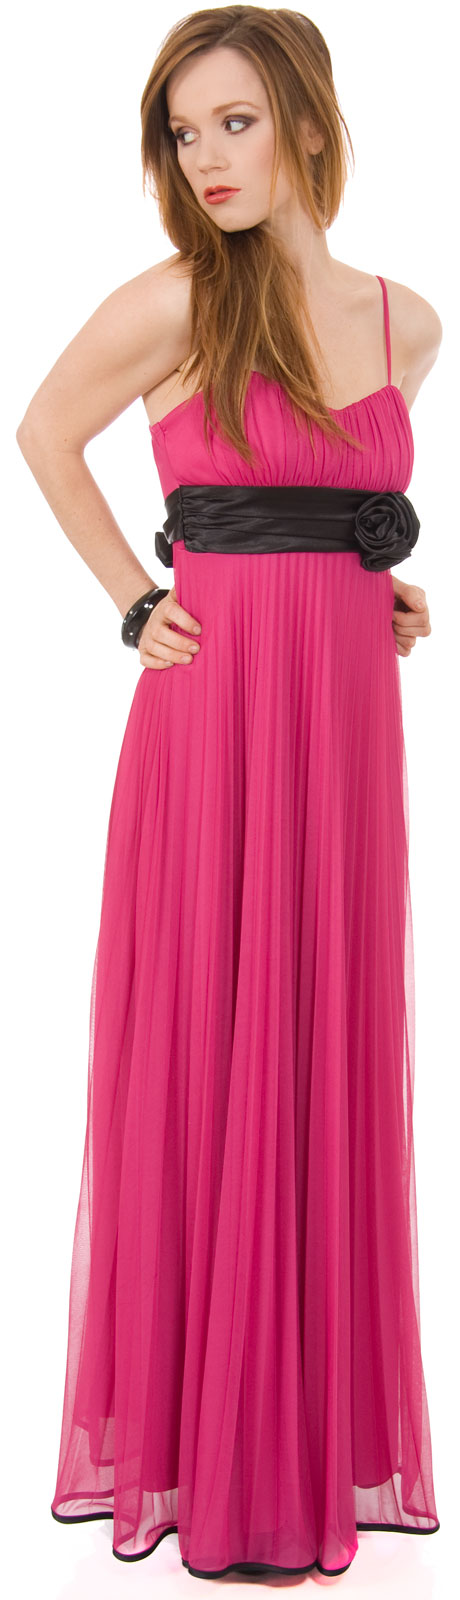 Image of Roman Inspired Long Formal Dress With Floral Applique in Magenta